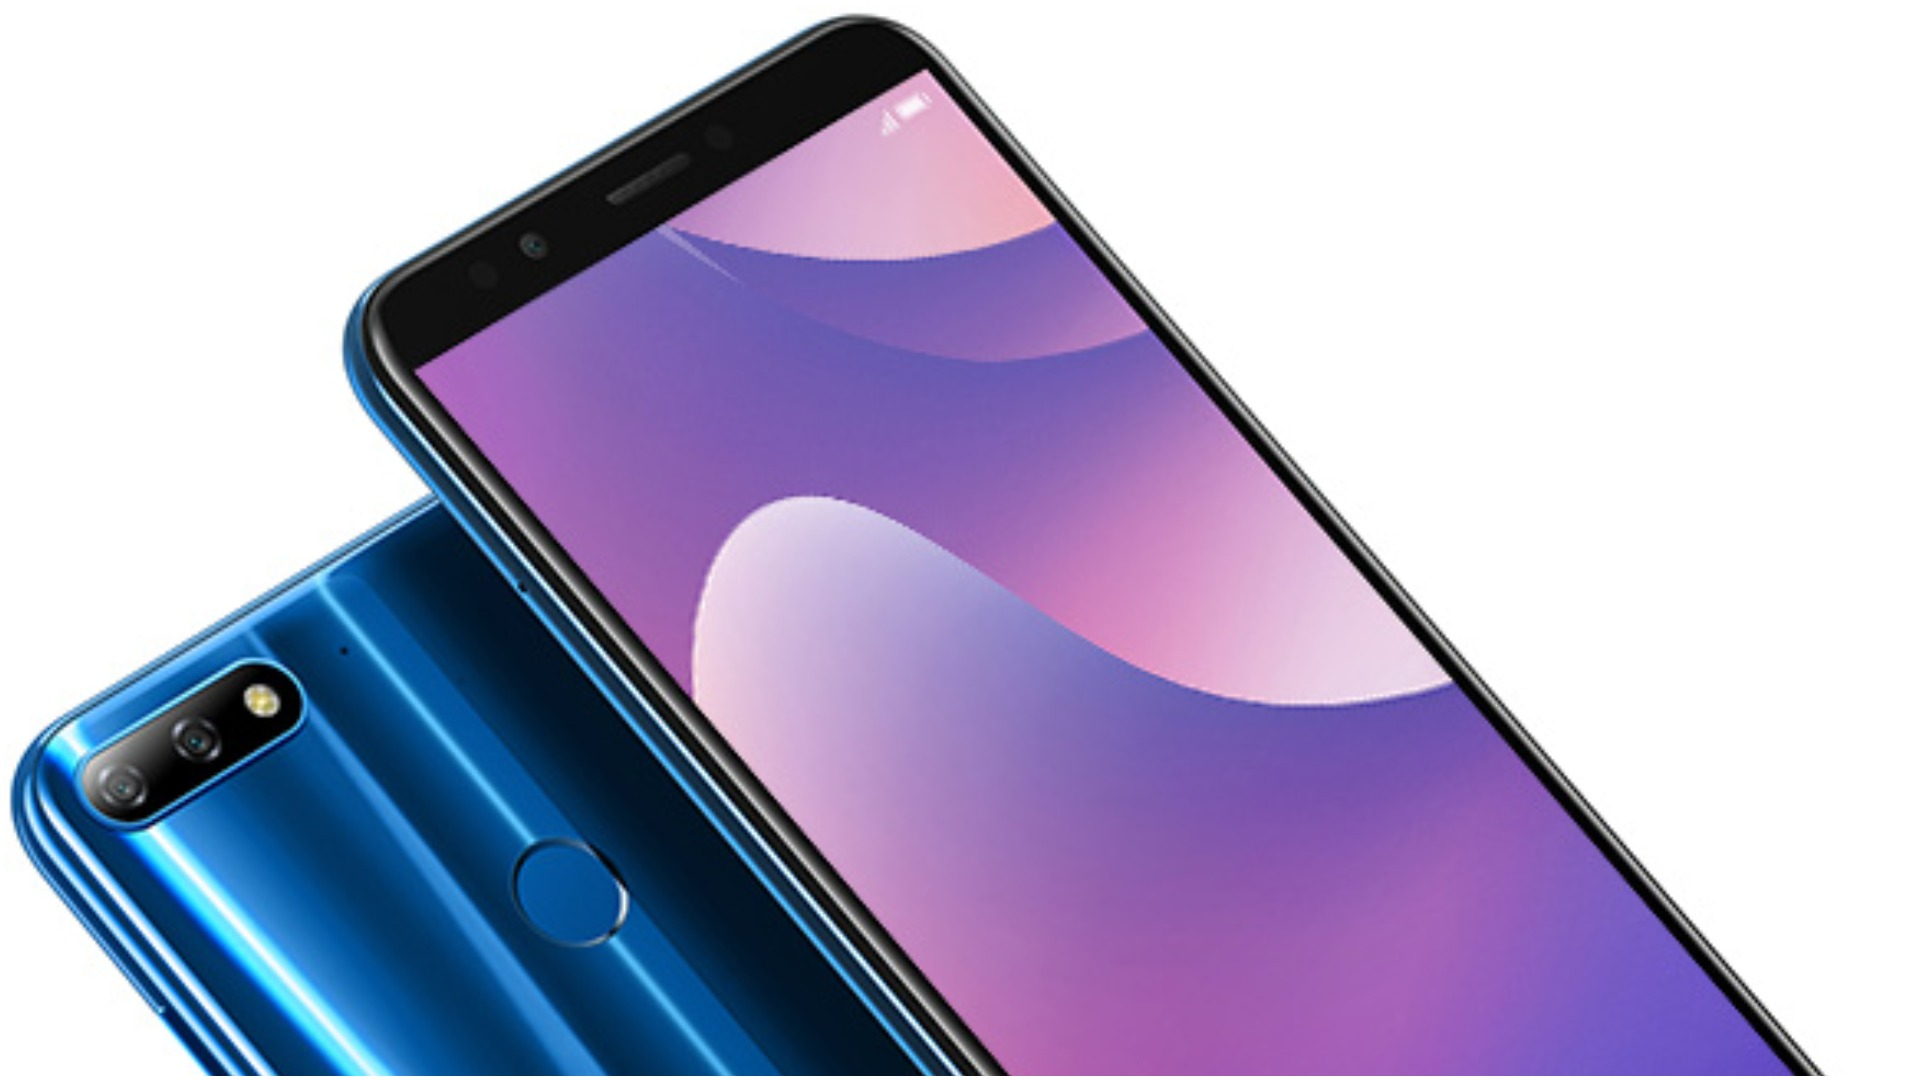 Huawei Quietly Unveils the Y7 Prime 2018 Smartphone With an